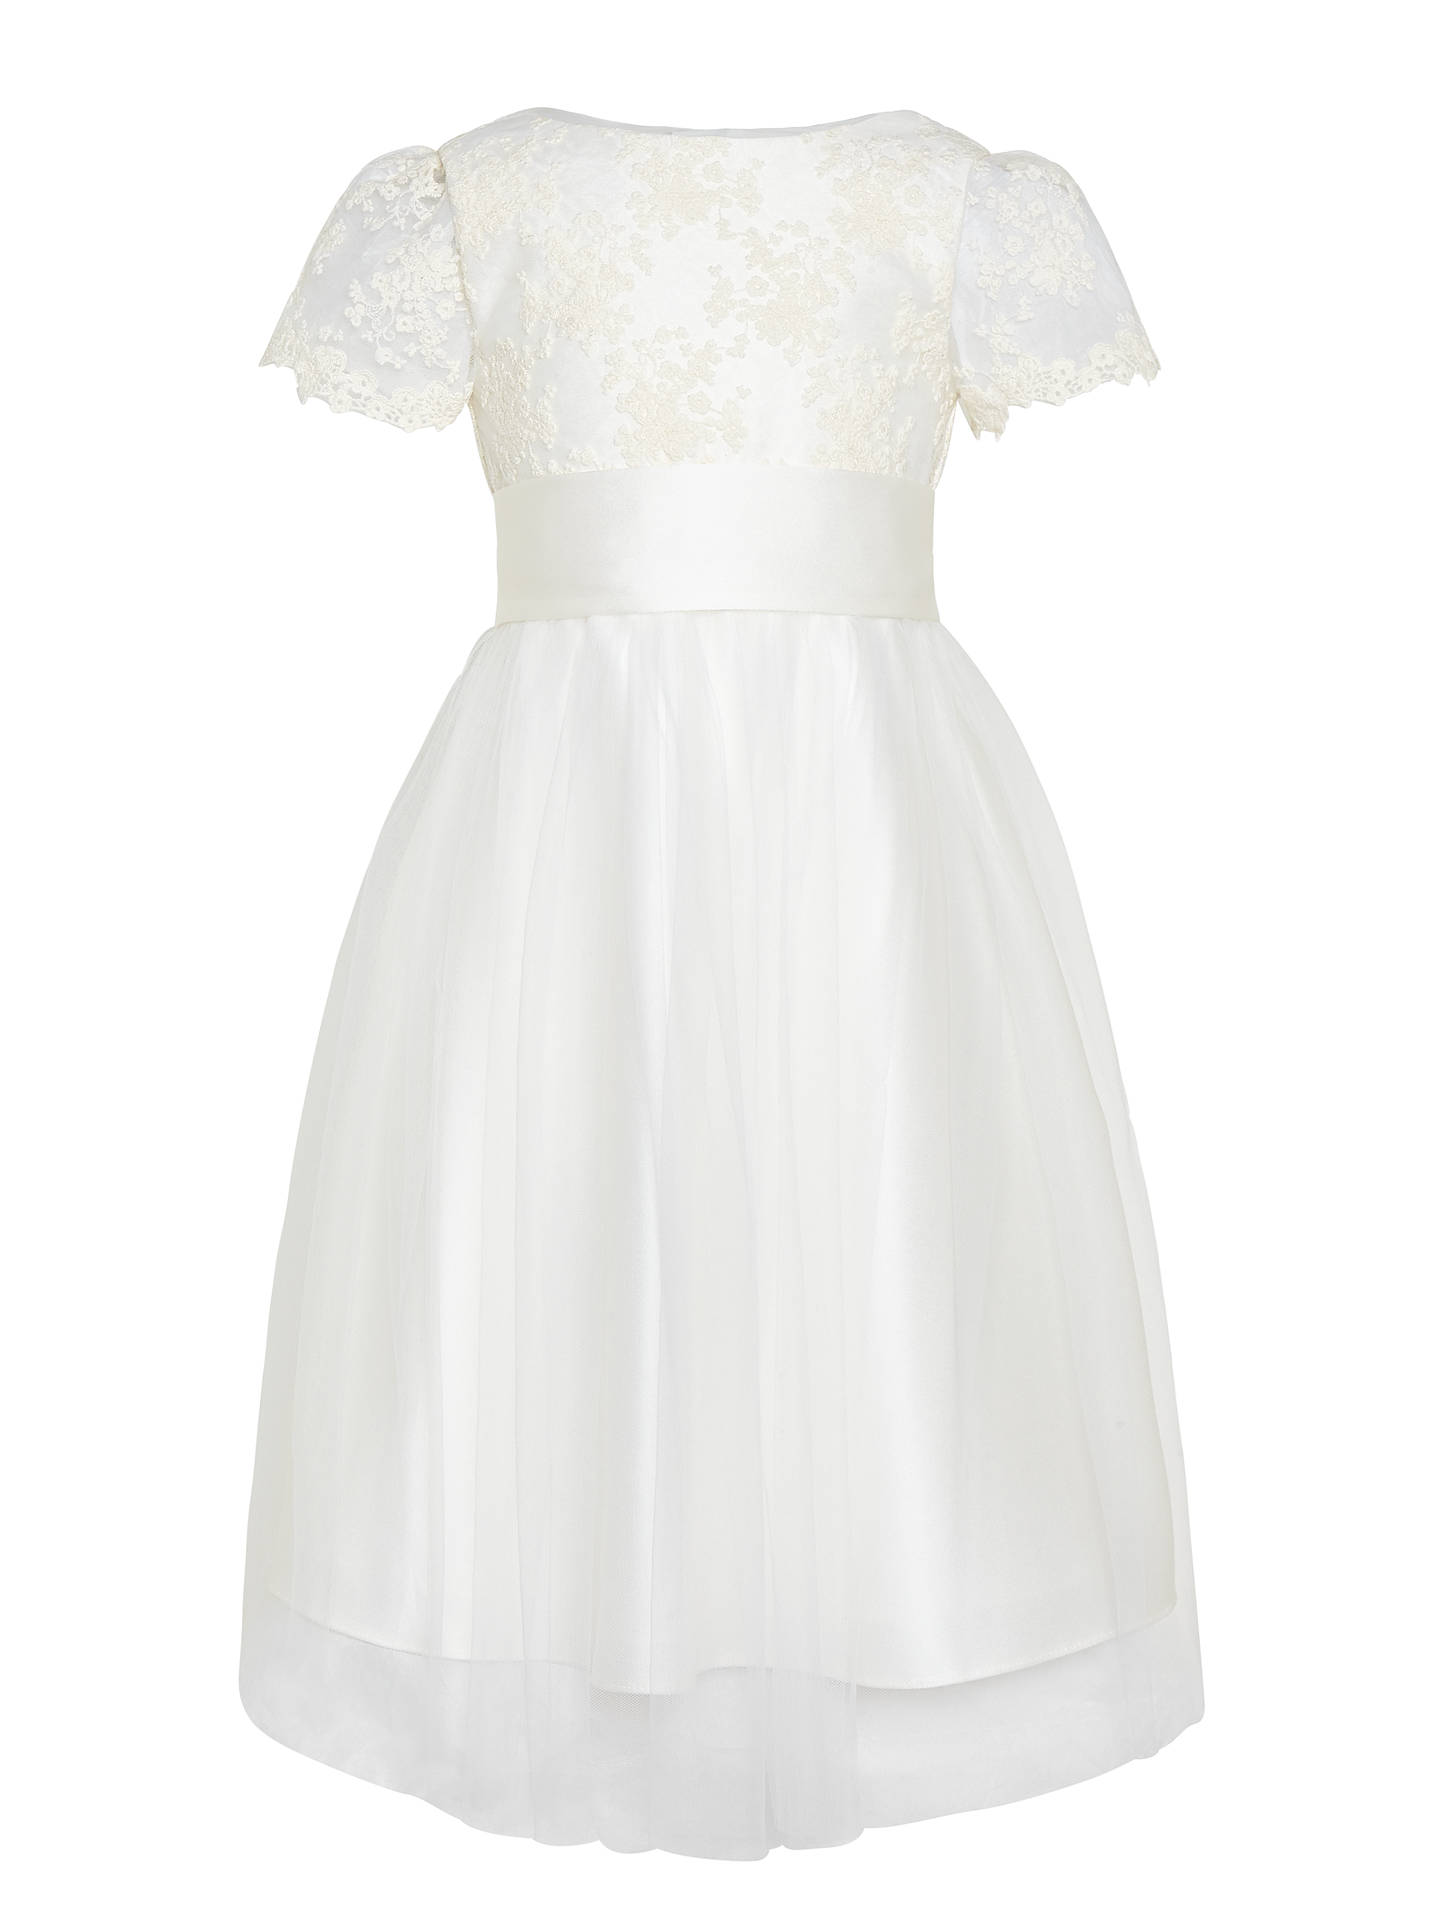 Buy John Lewis Girls' Floral Lace Bridesmaid Dress, Ivory, 2 years Online at johnlewis.com